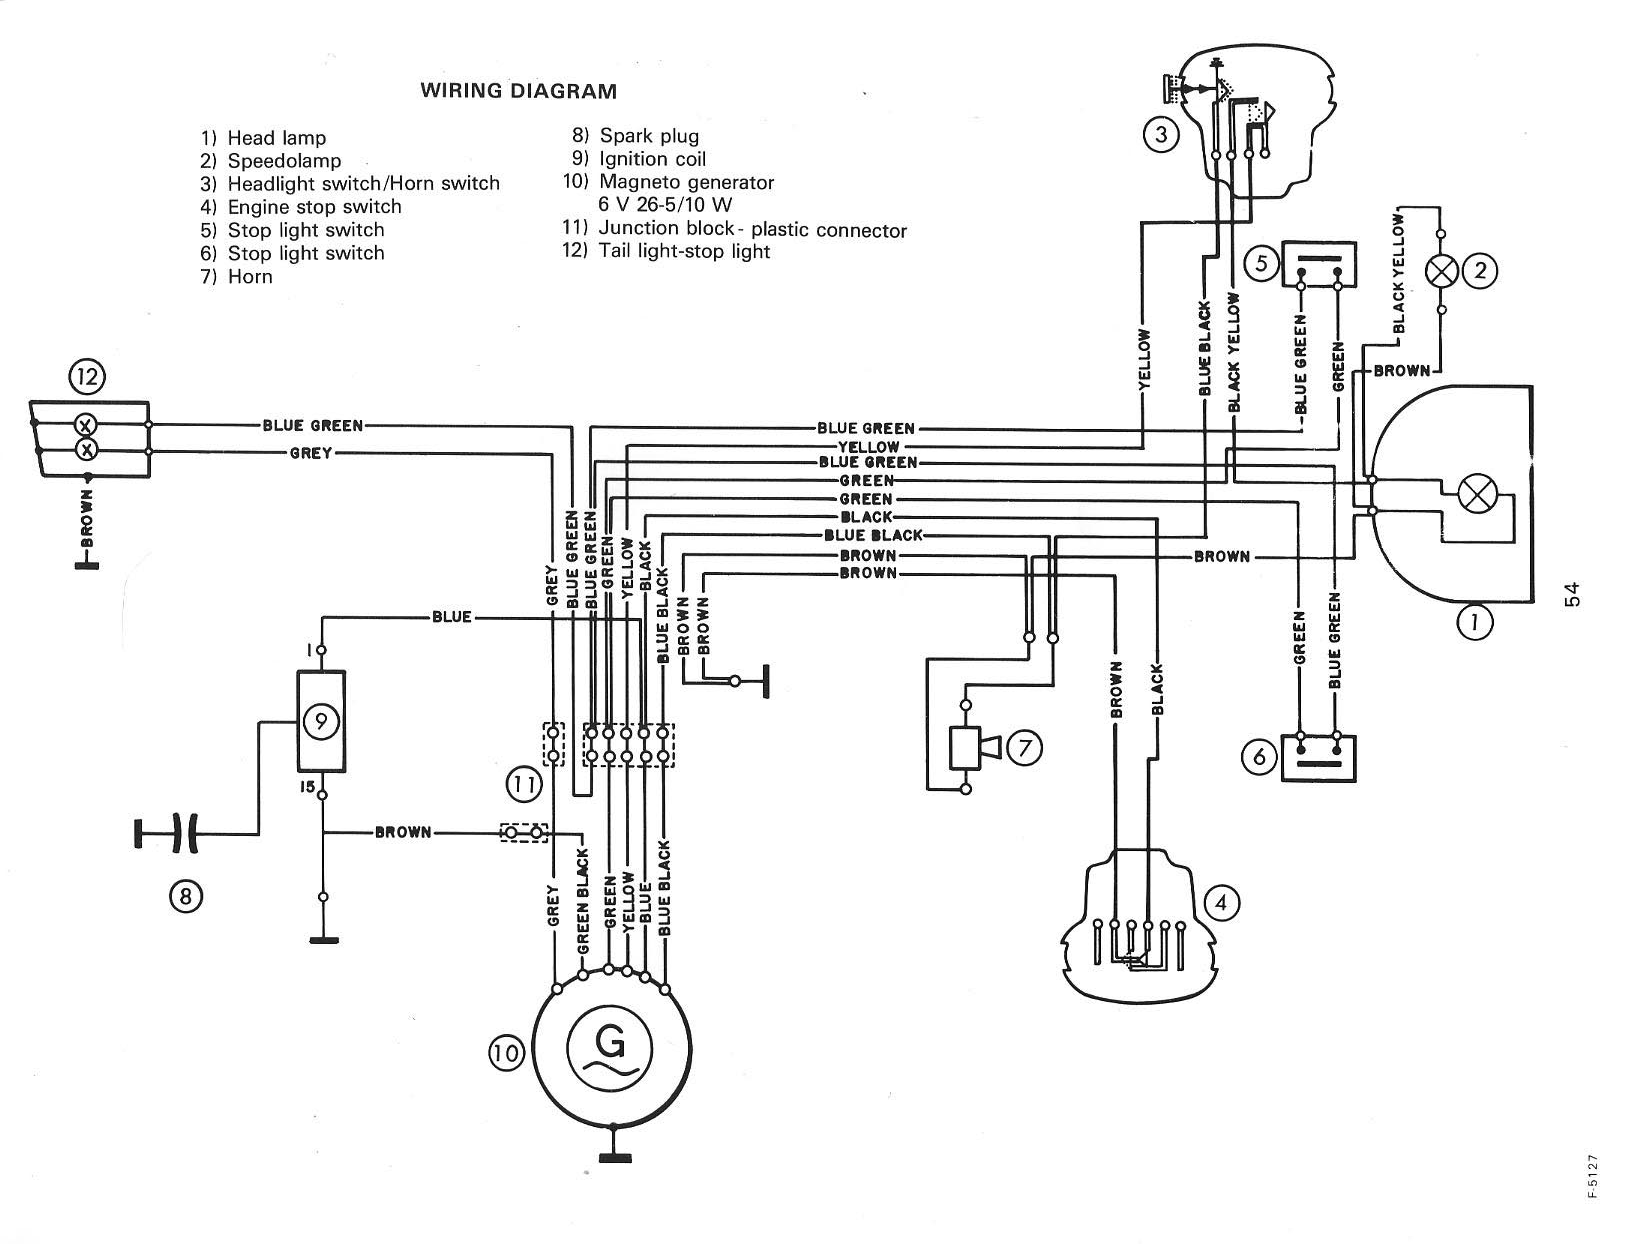 Puch_Murray_wiring_diagram puch wiring diagrams moped wiki Basic Electrical Wiring Diagrams at mifinder.co